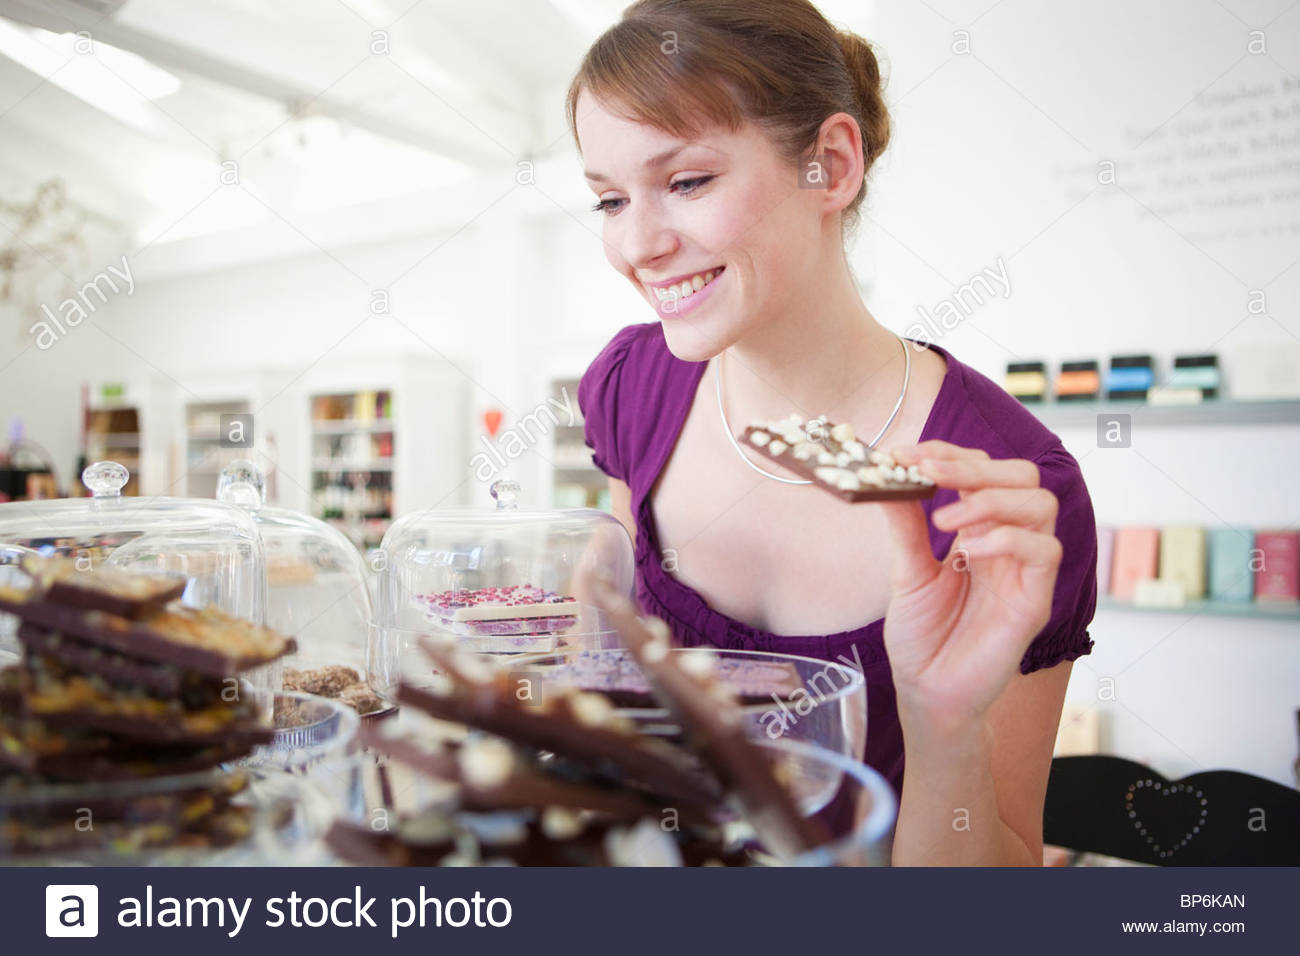 A woman choosing chocolate in a sweet shop - Stock Image